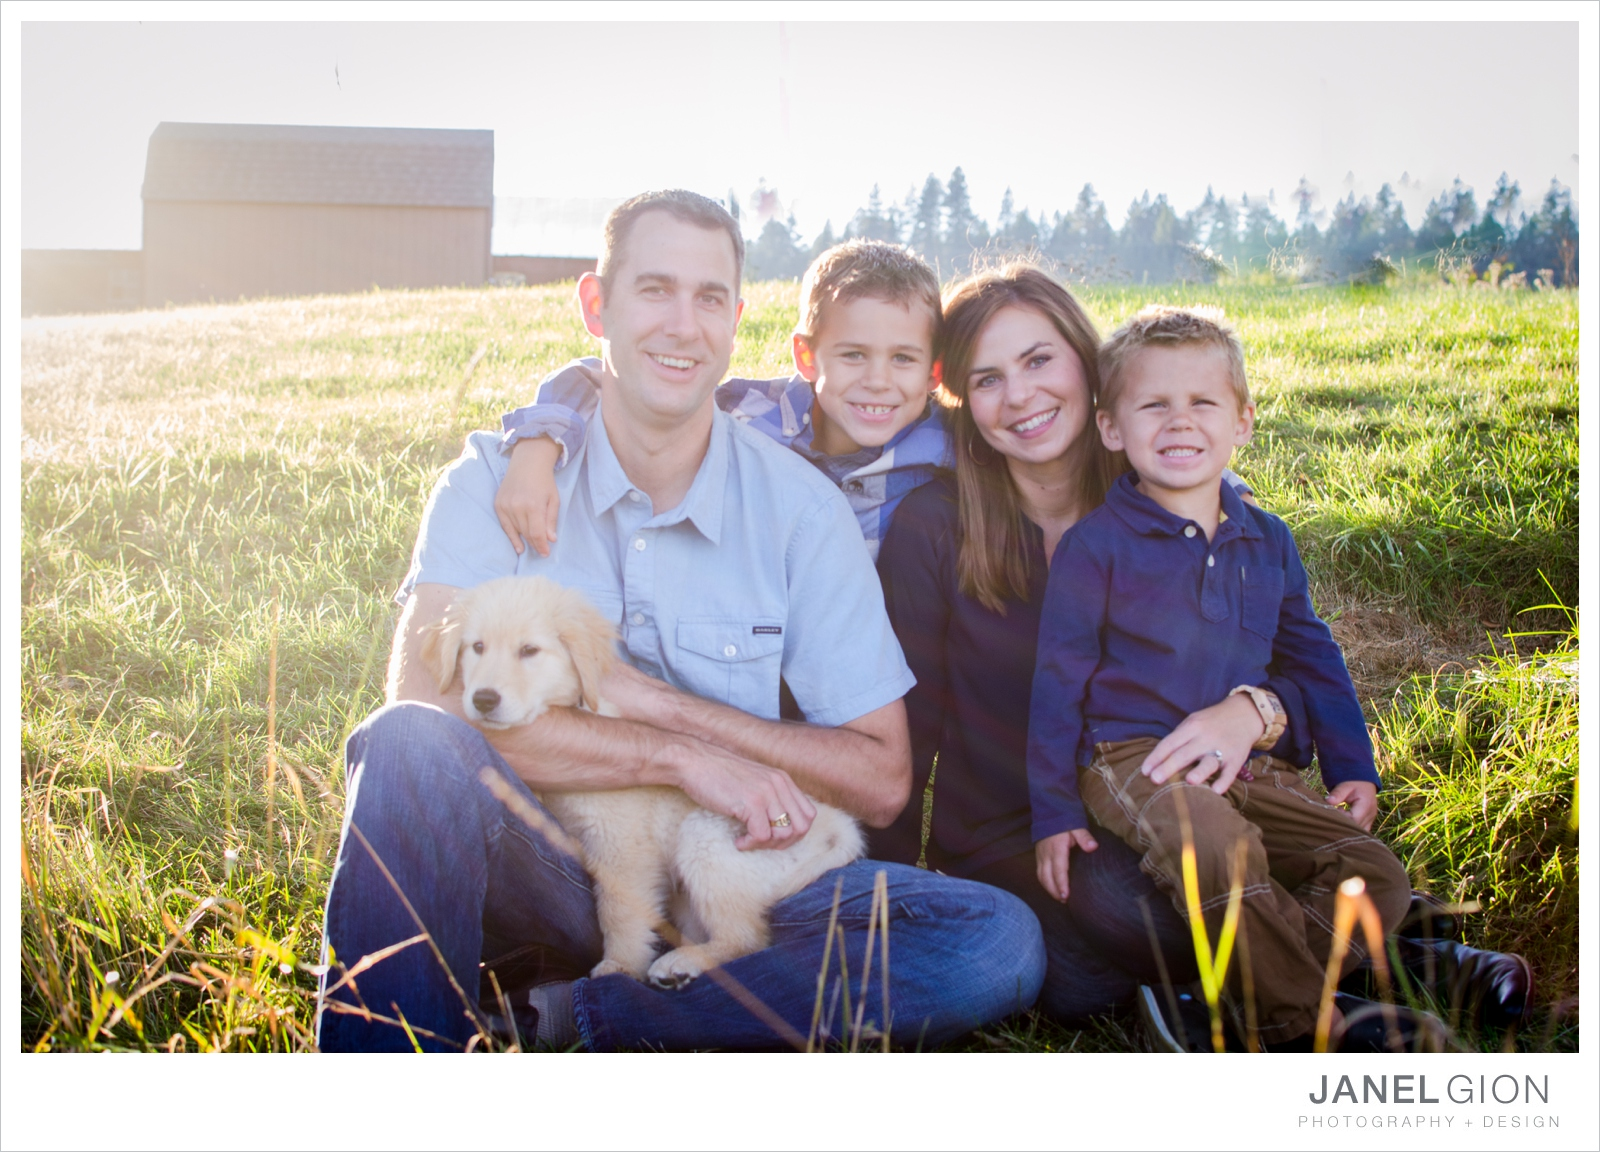 North-Idaho-Family-Children-Photographer-Year-in-Review-Contest-2013-Lifestyle-Family-Portraits-by-Janel-Gion-Photography_0043.jpg